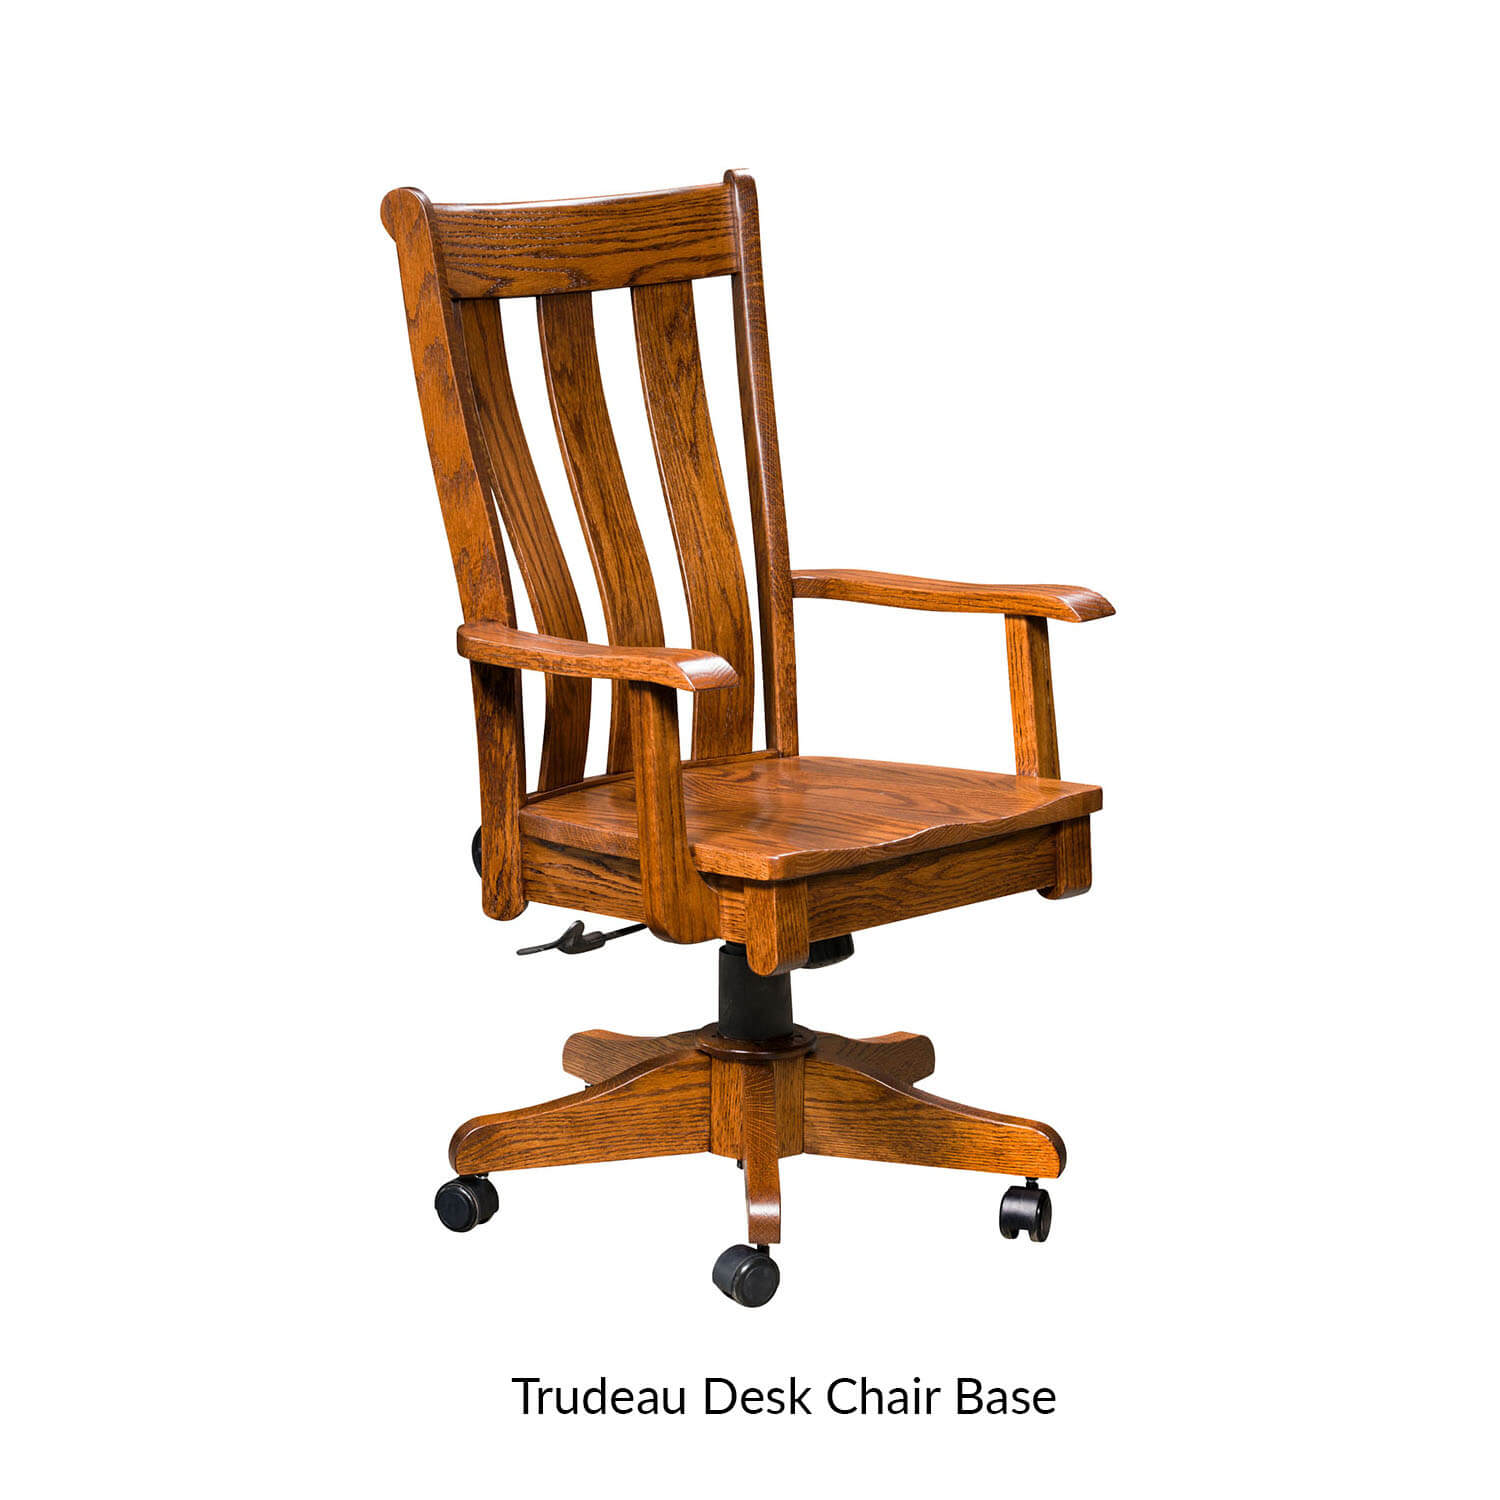 19.-trudeau-desk-chair-base.jpg